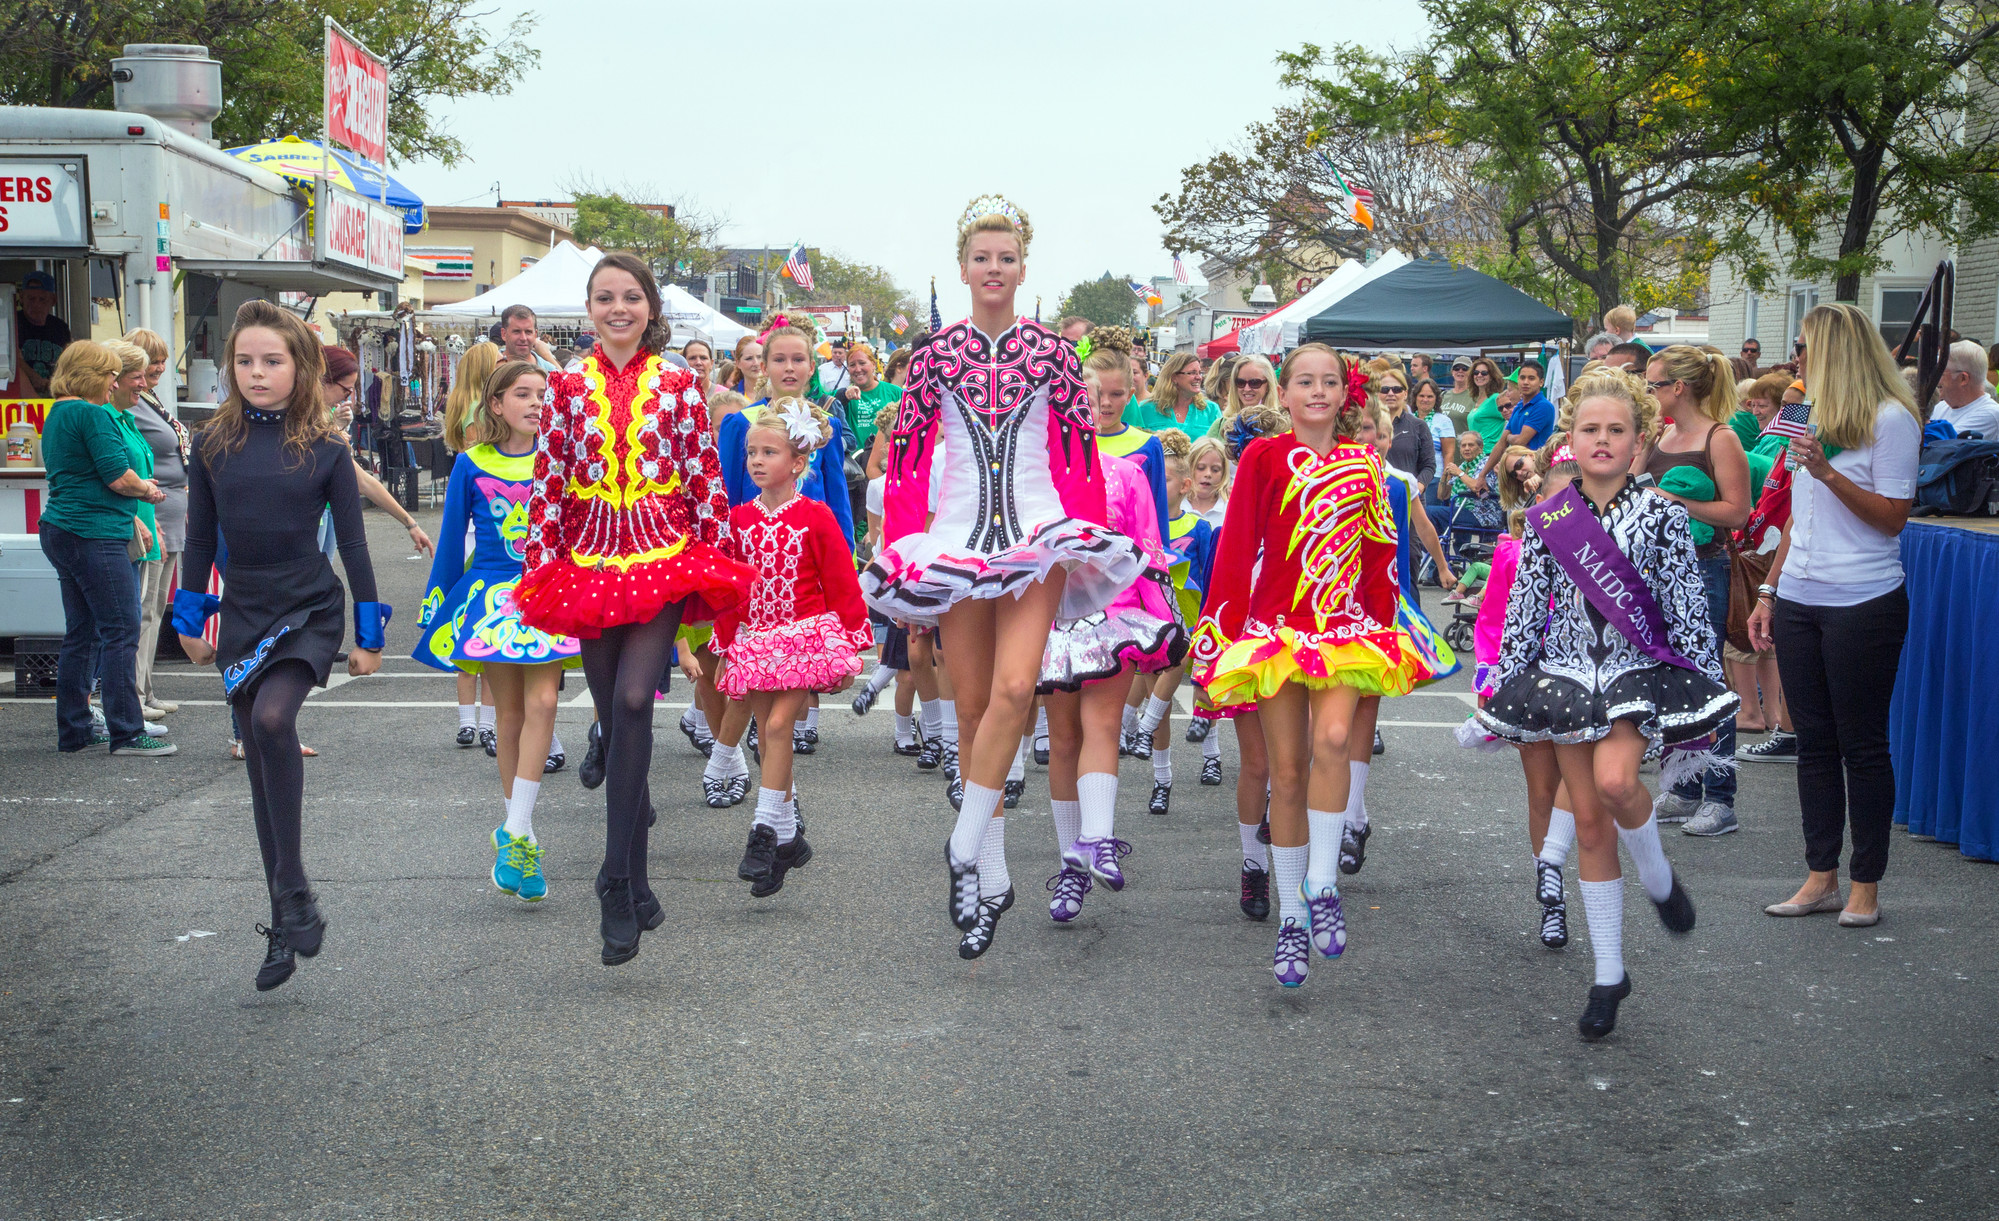 Girls from the Hagen School of Irish Dance performed traditional Irish dances during the parade.